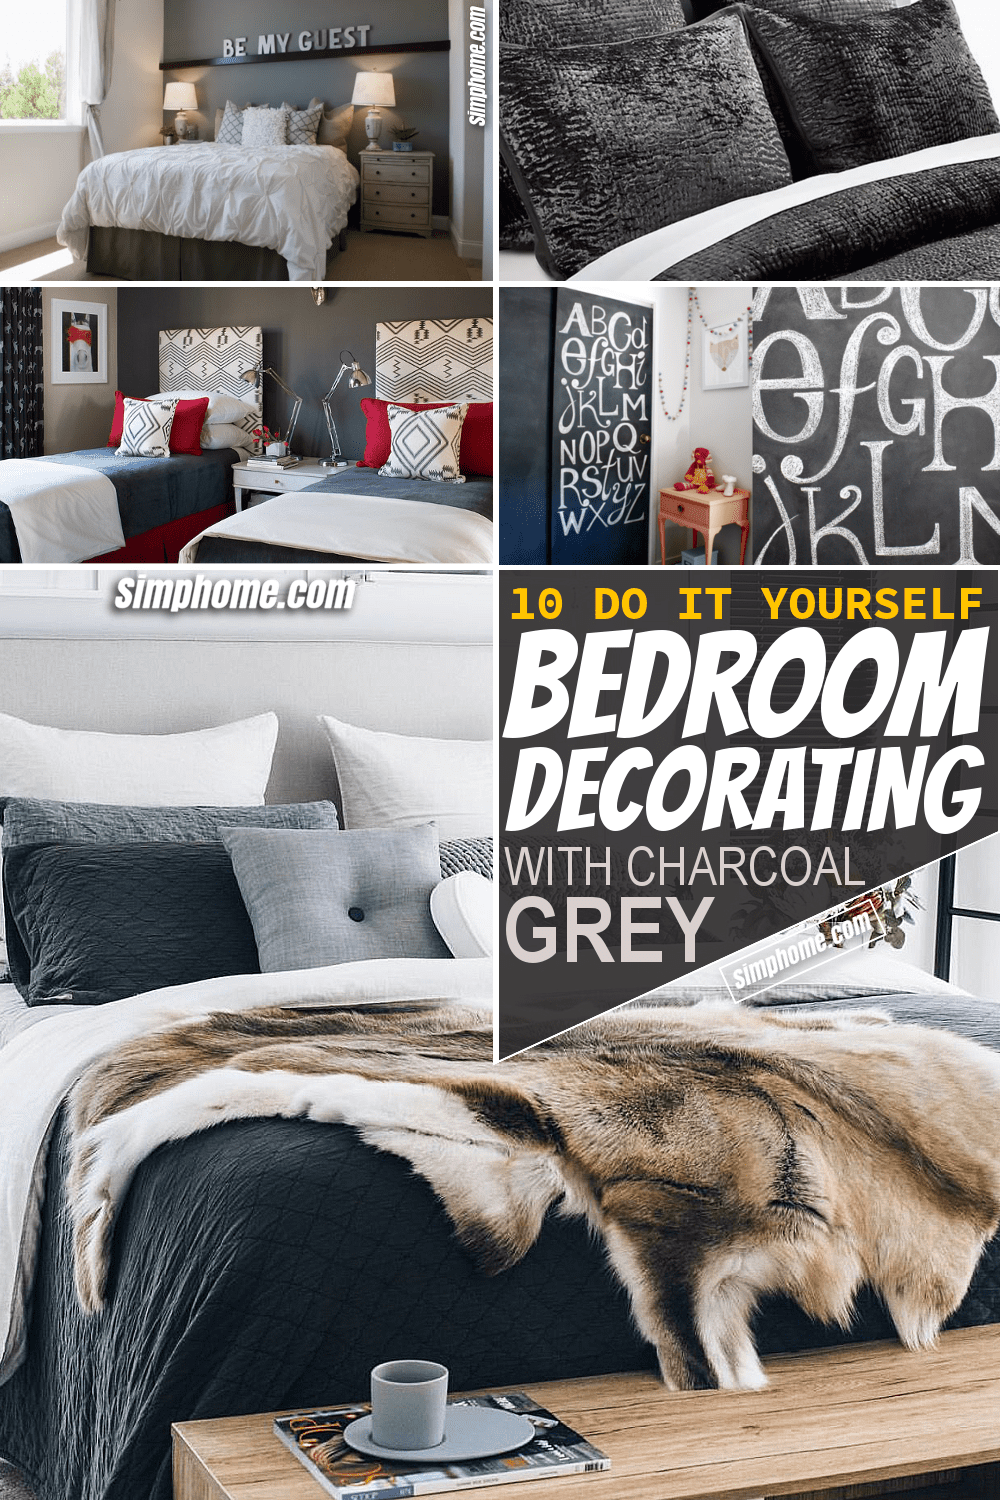 Simphome.com 10 DIY Bedrooms Decorating with Charcoal Grey ideas Pinterest Long